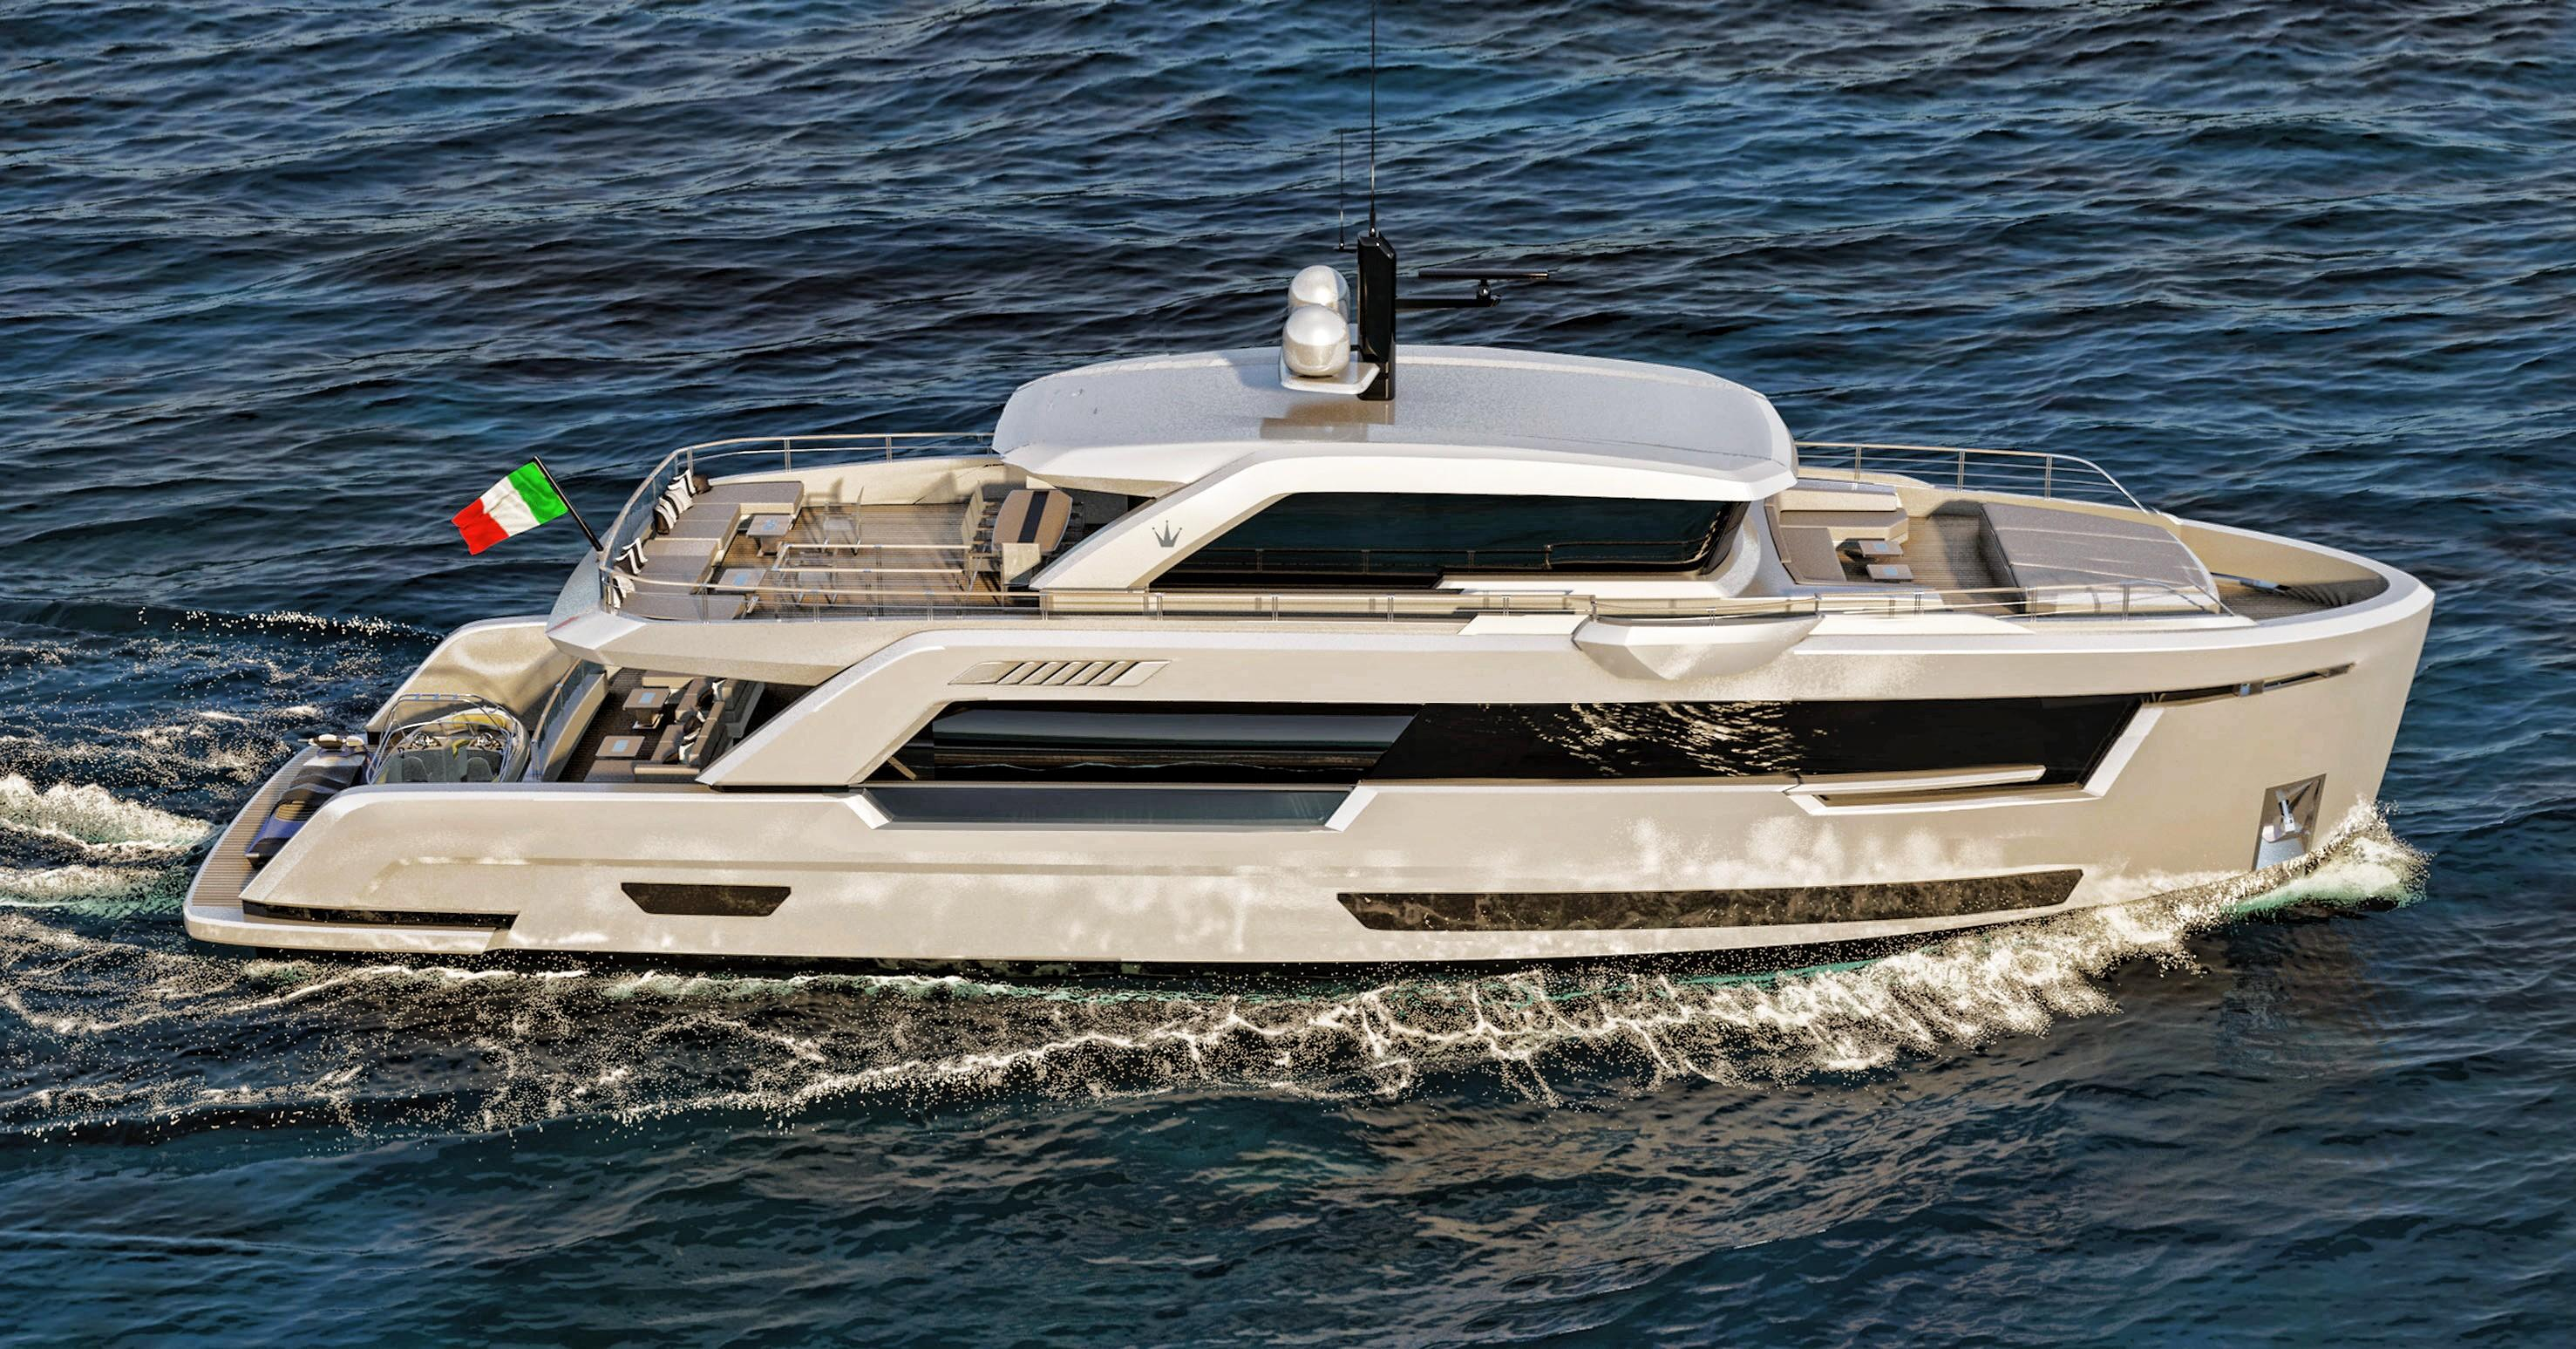 2019 Ocean King Ducale 88 Power New And Used Boats For Sale